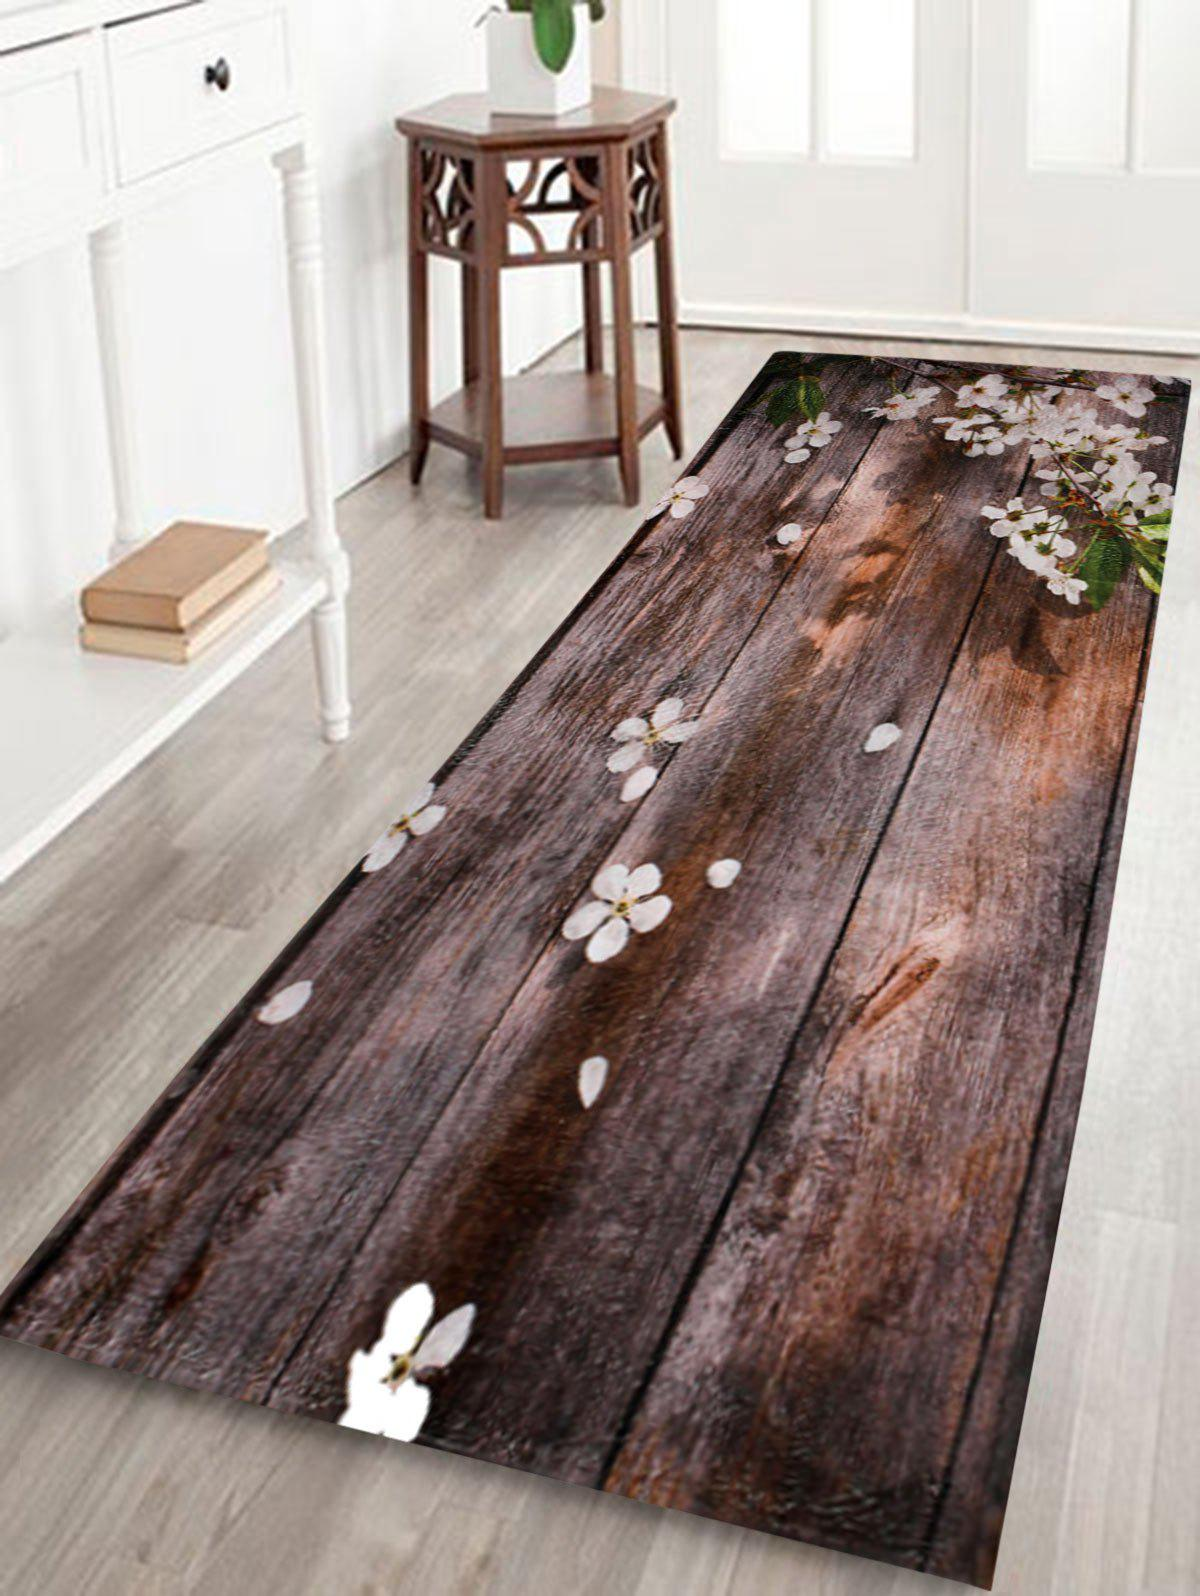 Coral Fleece Vintage Plank Floral Bathroom RugHOME<br><br>Size: W16 INCH * L47 INCH; Color: BROWN; Products Type: Bath rugs; Materials: Coral FLeece; Pattern: Floral; Style: Vintage; Shape: Rectangle; Package Contents: 1 x Rug;